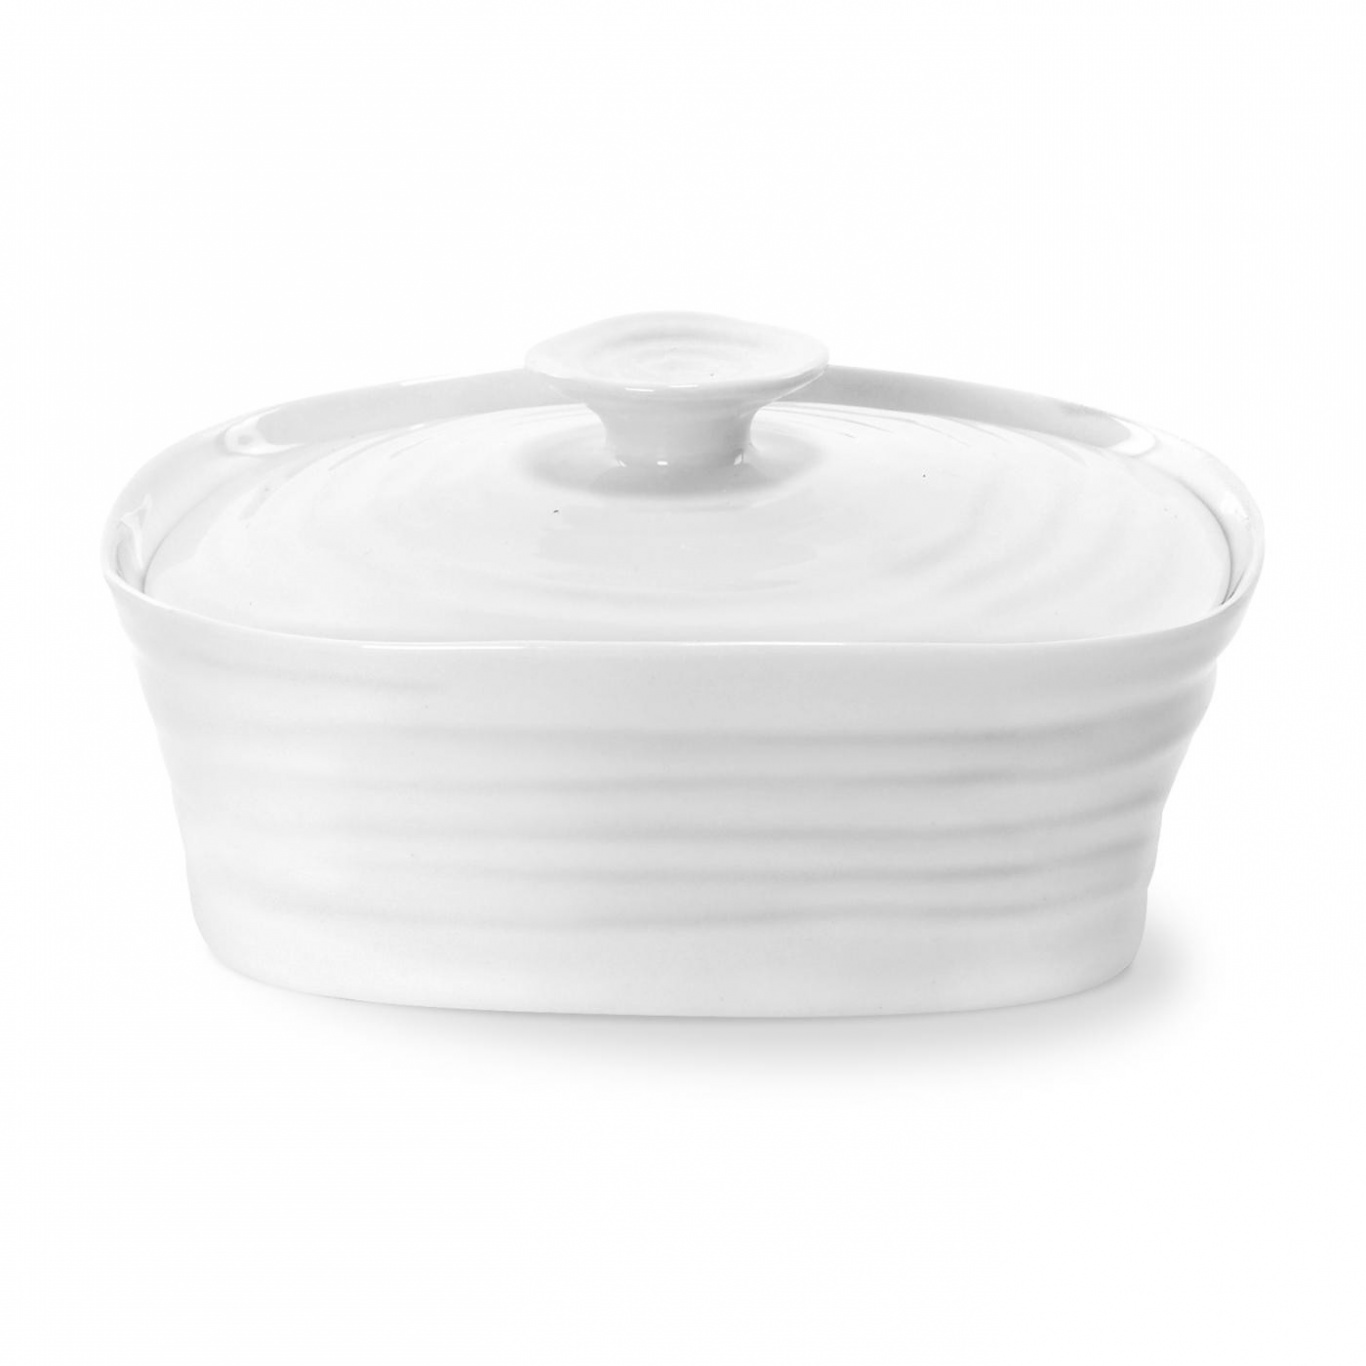 Image of Sophie Conran White Covered Butter Dish